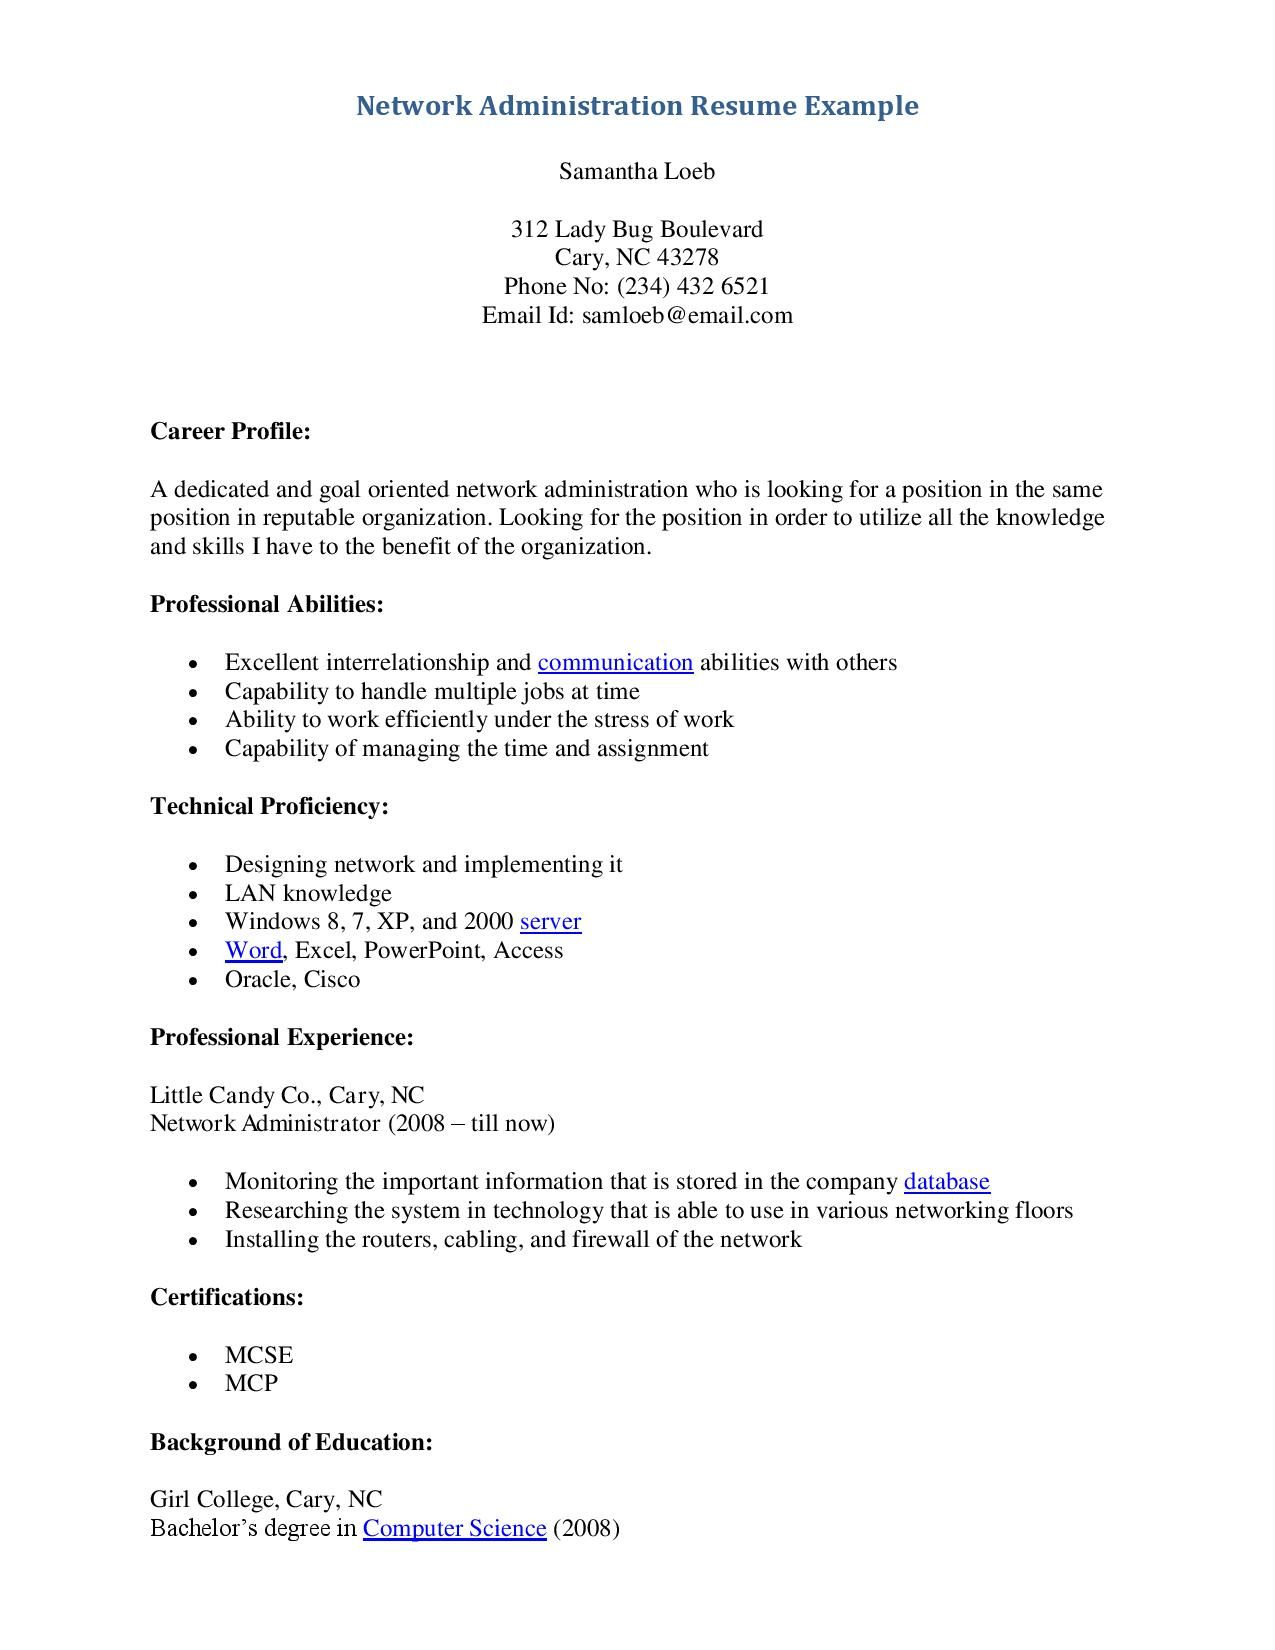 Best Cover Letter For Engineering Internship This Is A Format For